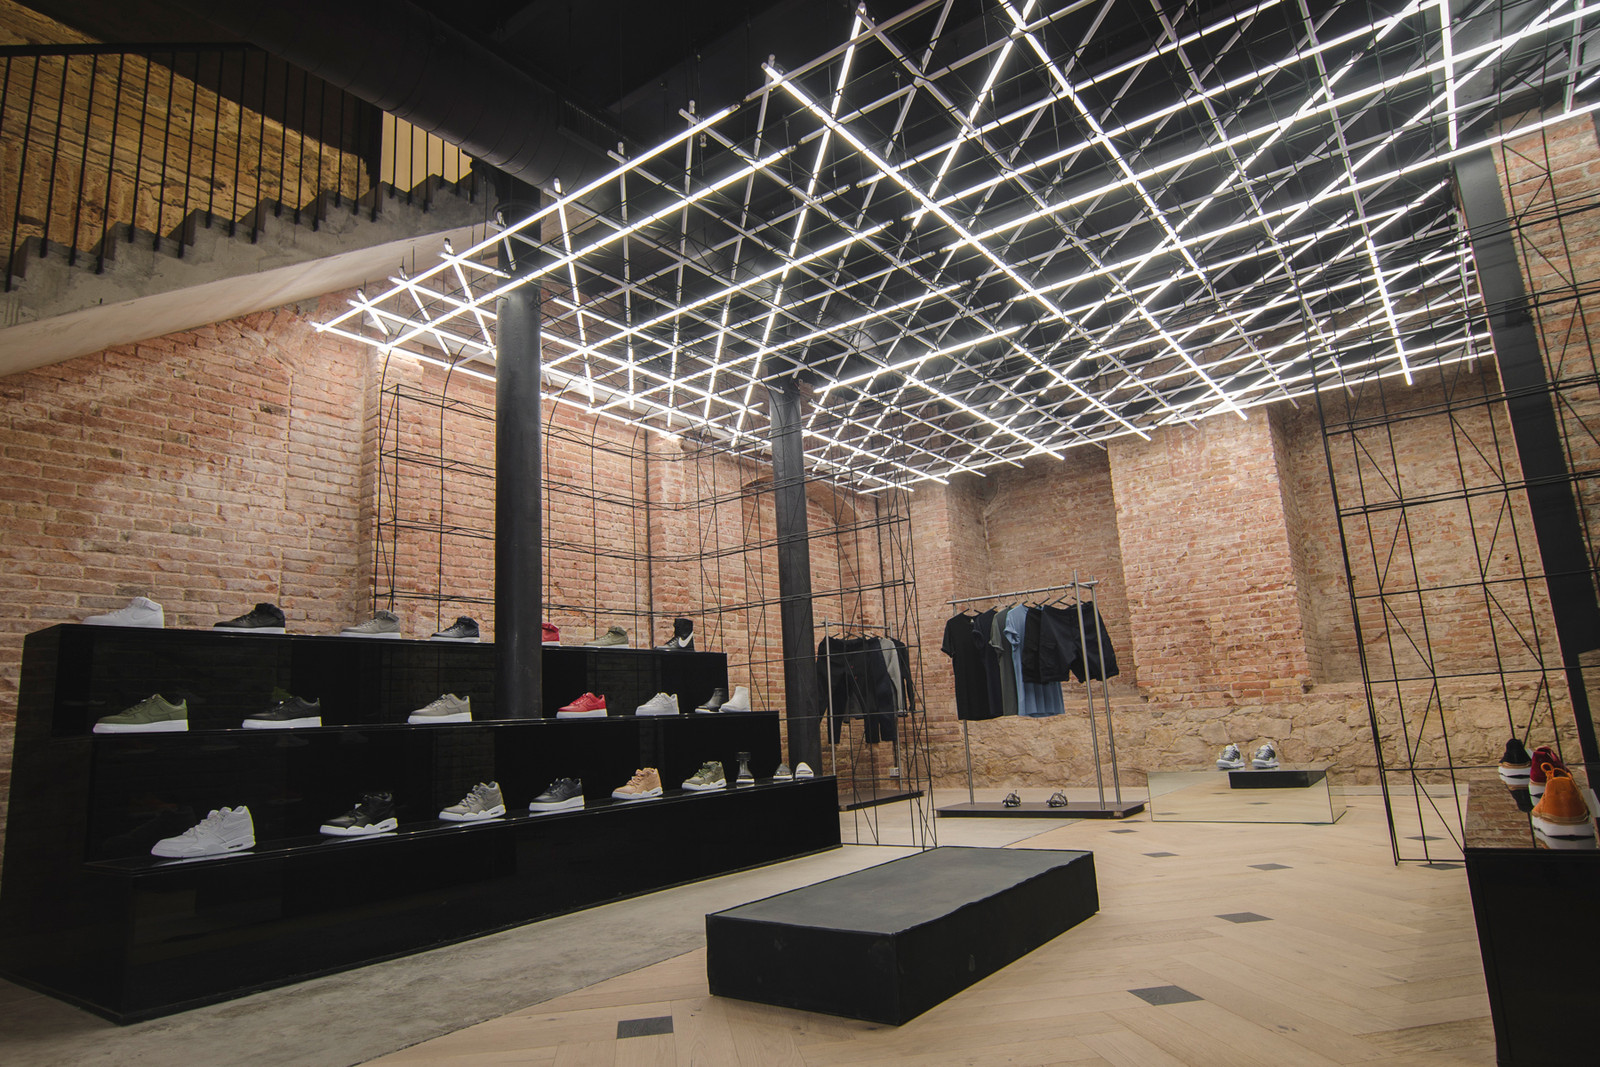 a3484b556871 Sneaker Store Spotlight  sivasdescalzo Barcelona Madrid Spain Guide  HYPEBEAST Guide Travel Rick Owens Technology Raf